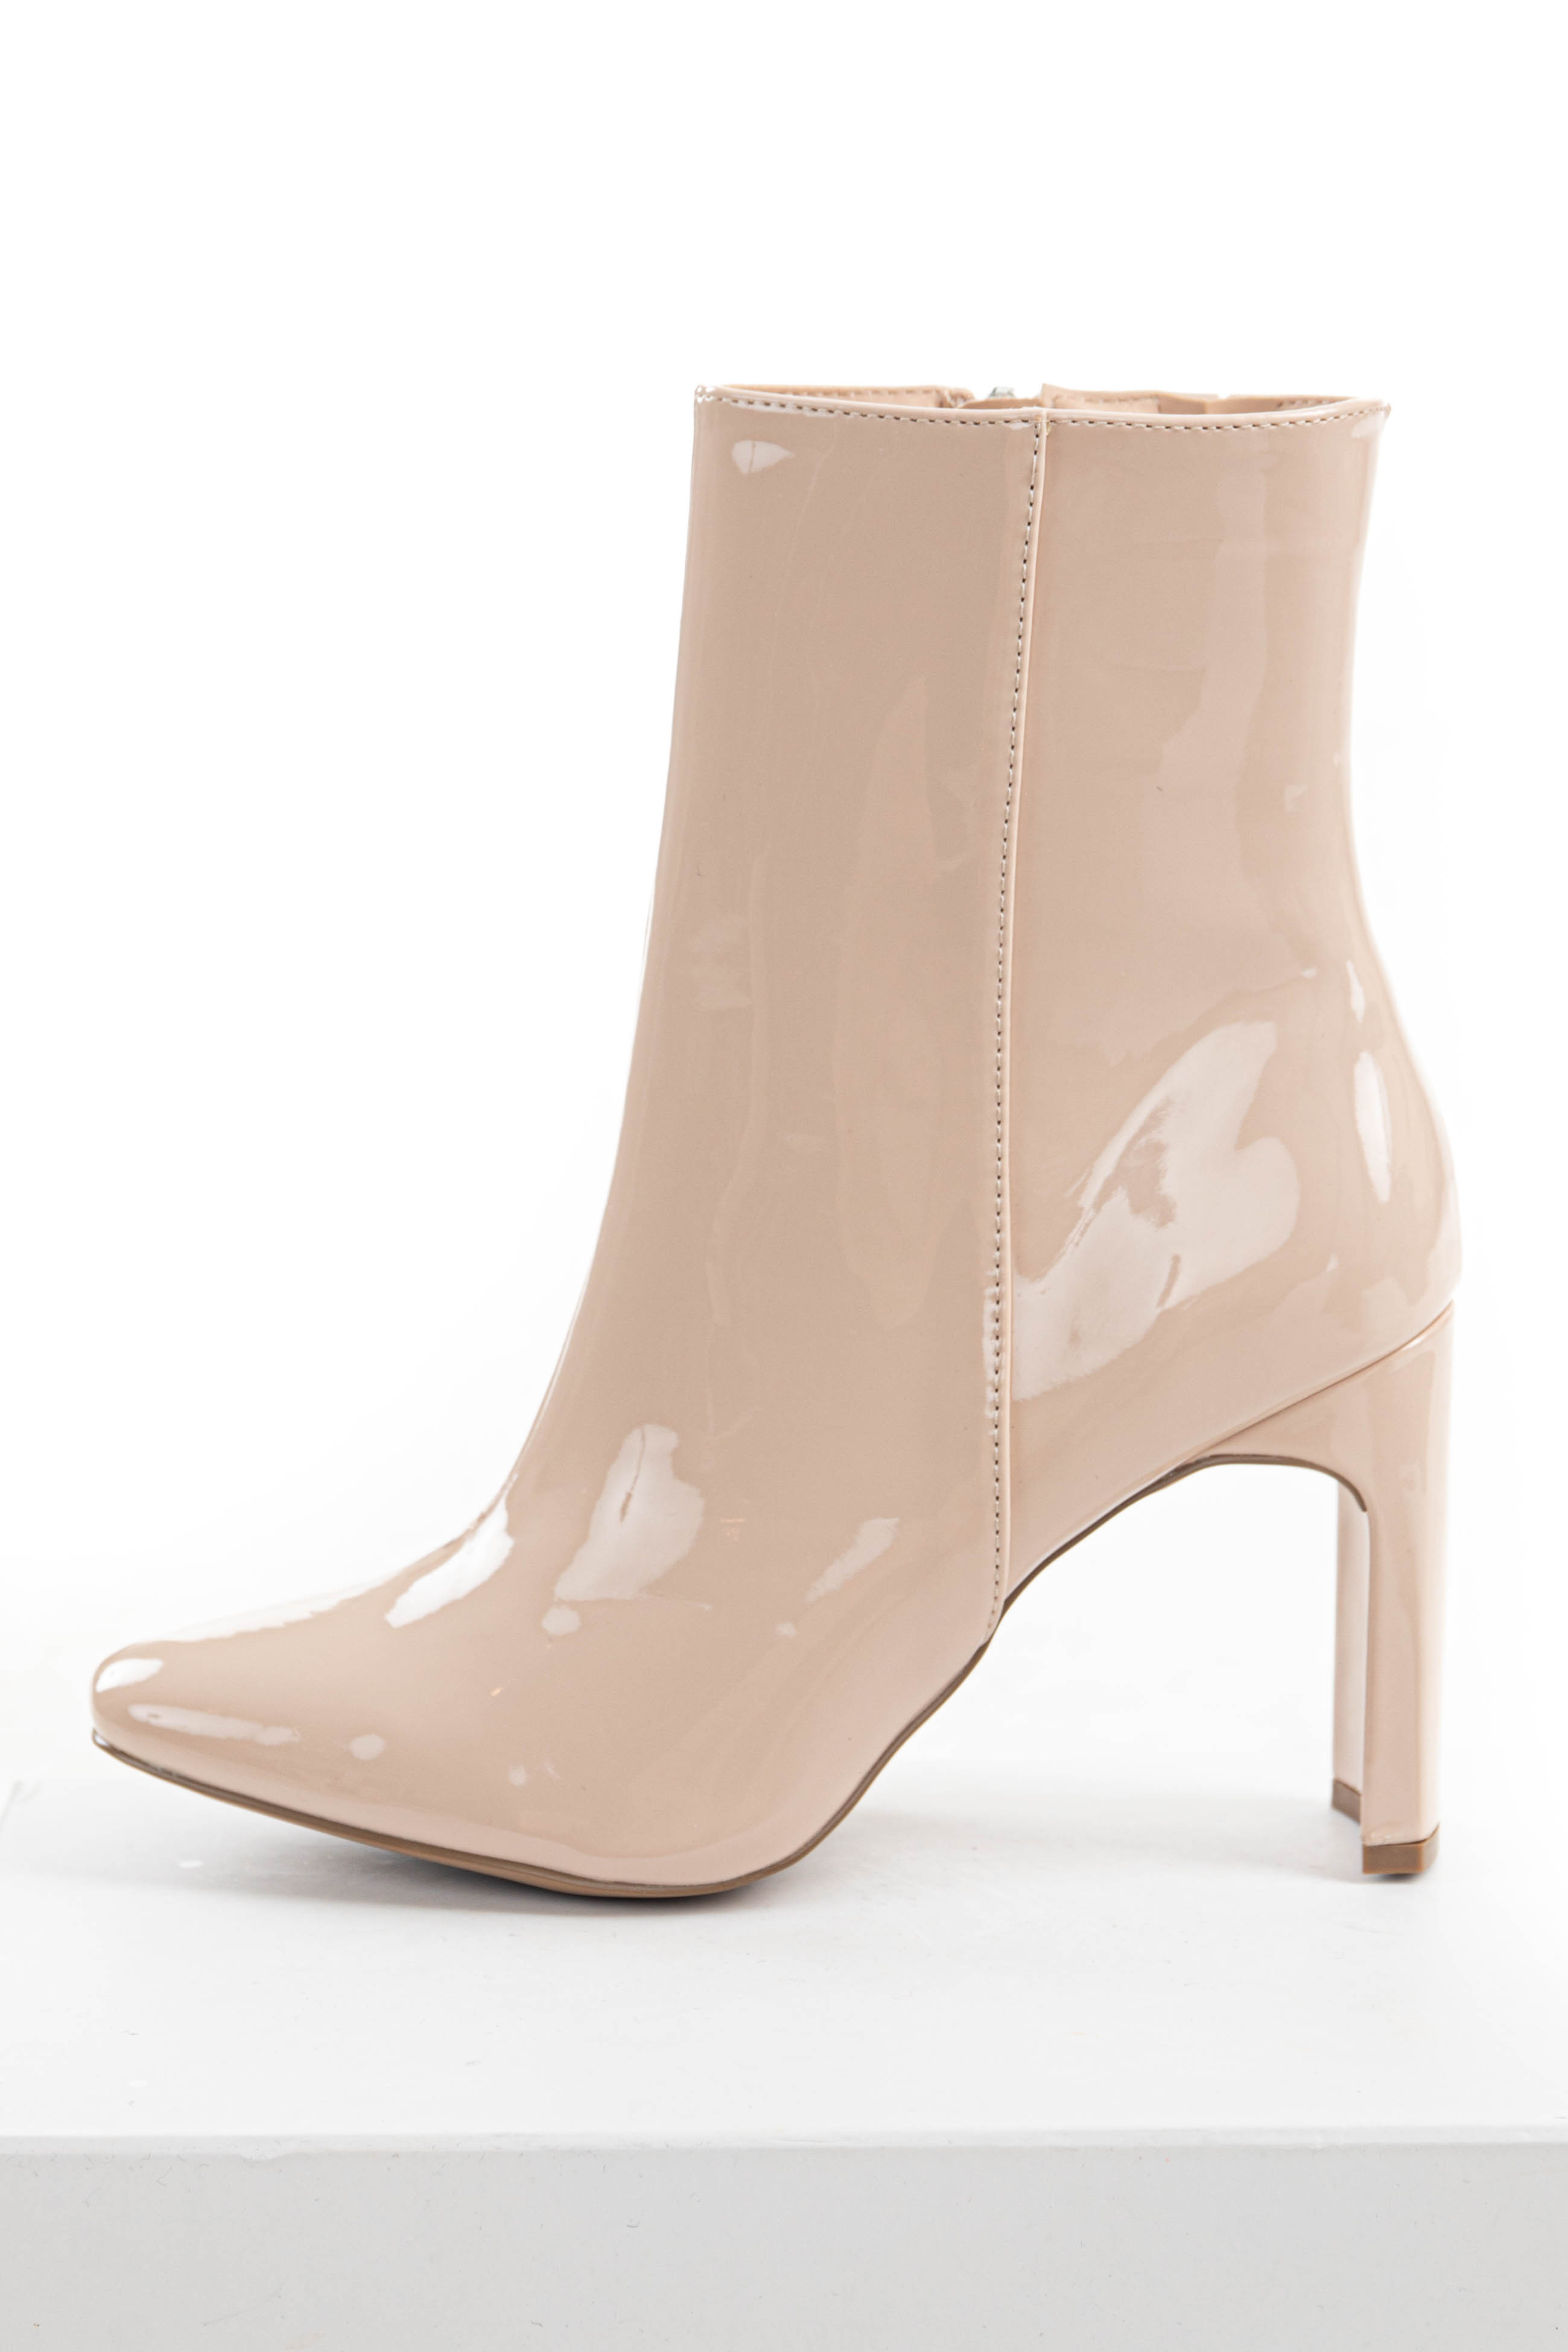 Desert Sand Curved High Heeled Glossy Bootie